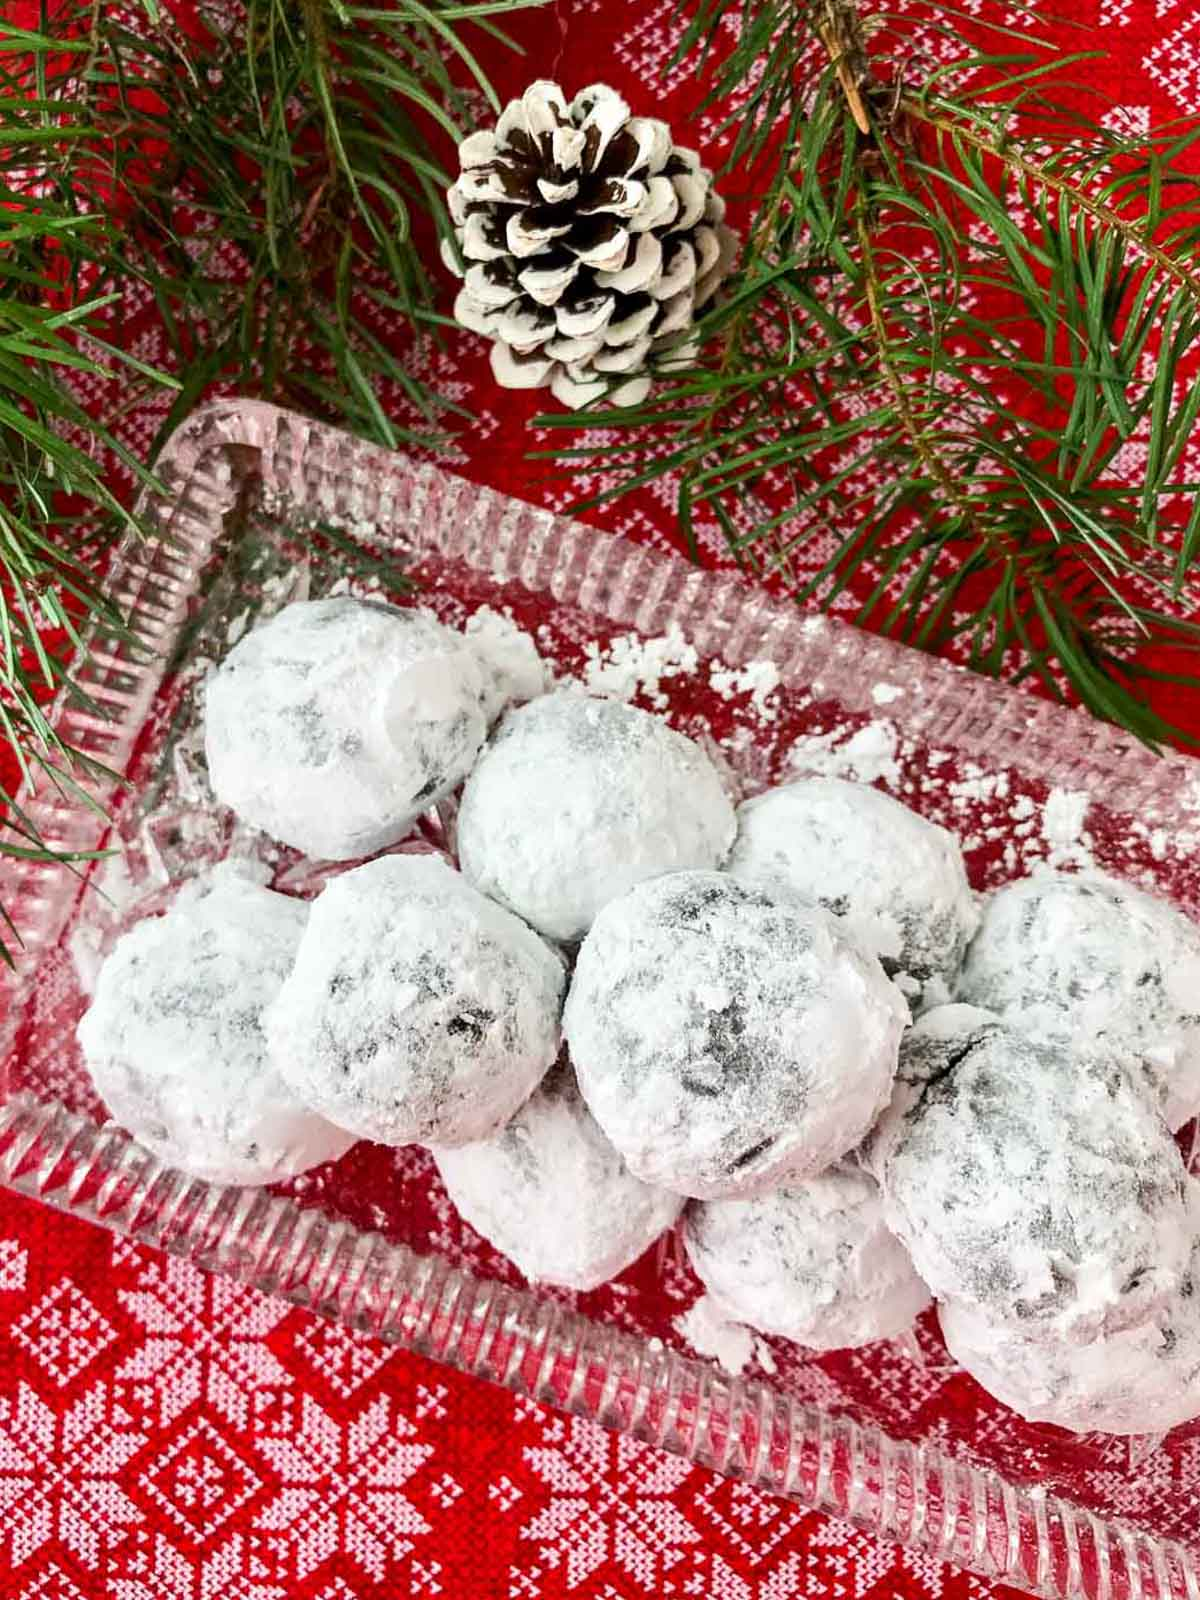 Rum balls on glass tray on red snowflake cloth with white pine cone and pine tree branch